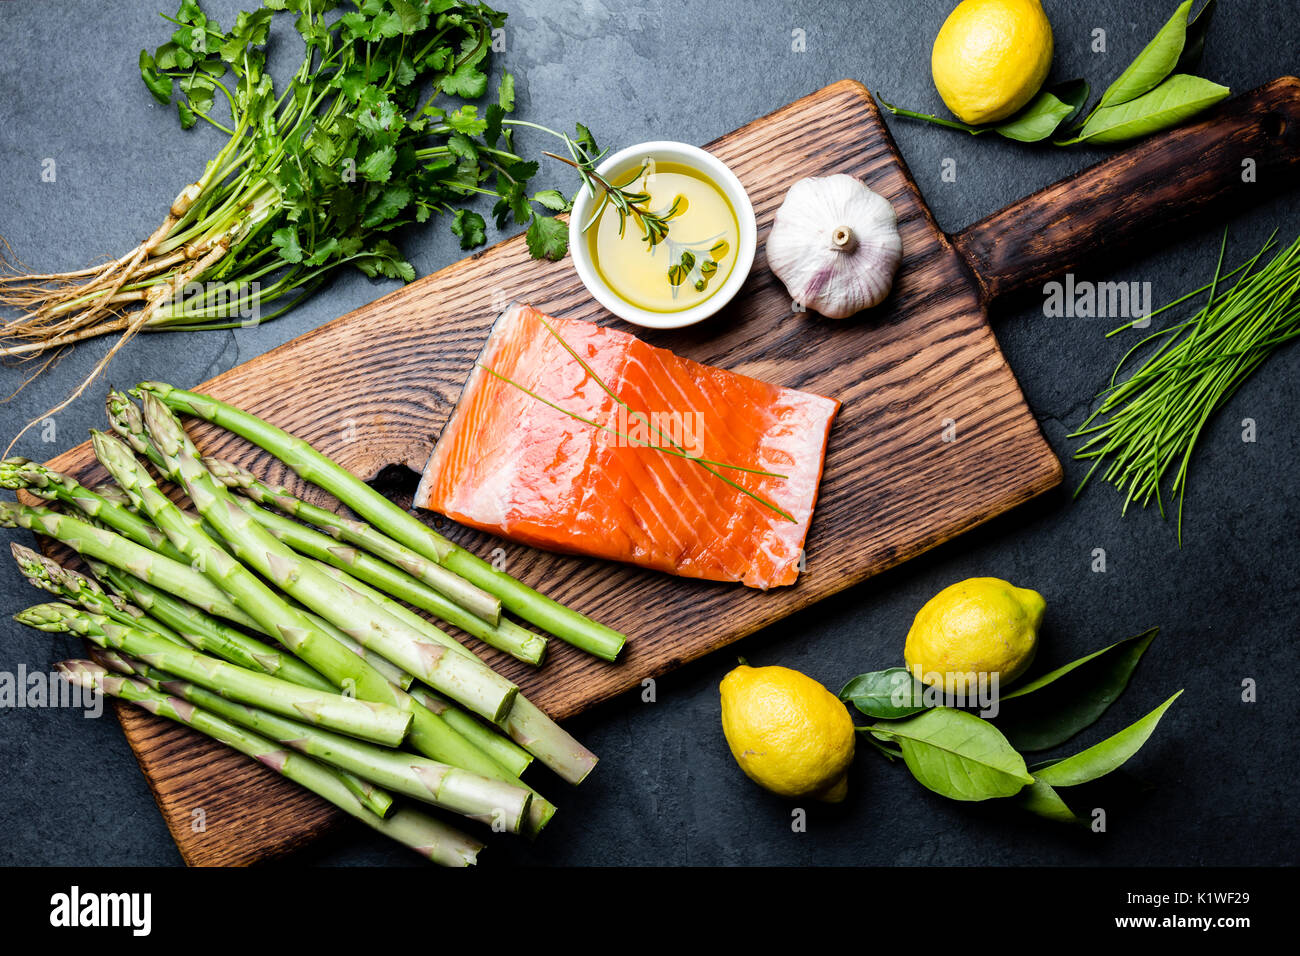 Ingredients for cooking. Raw salmon fillet, asparagus and herbs on wooden board. Food cooking background with copy space. Top view - Stock Image